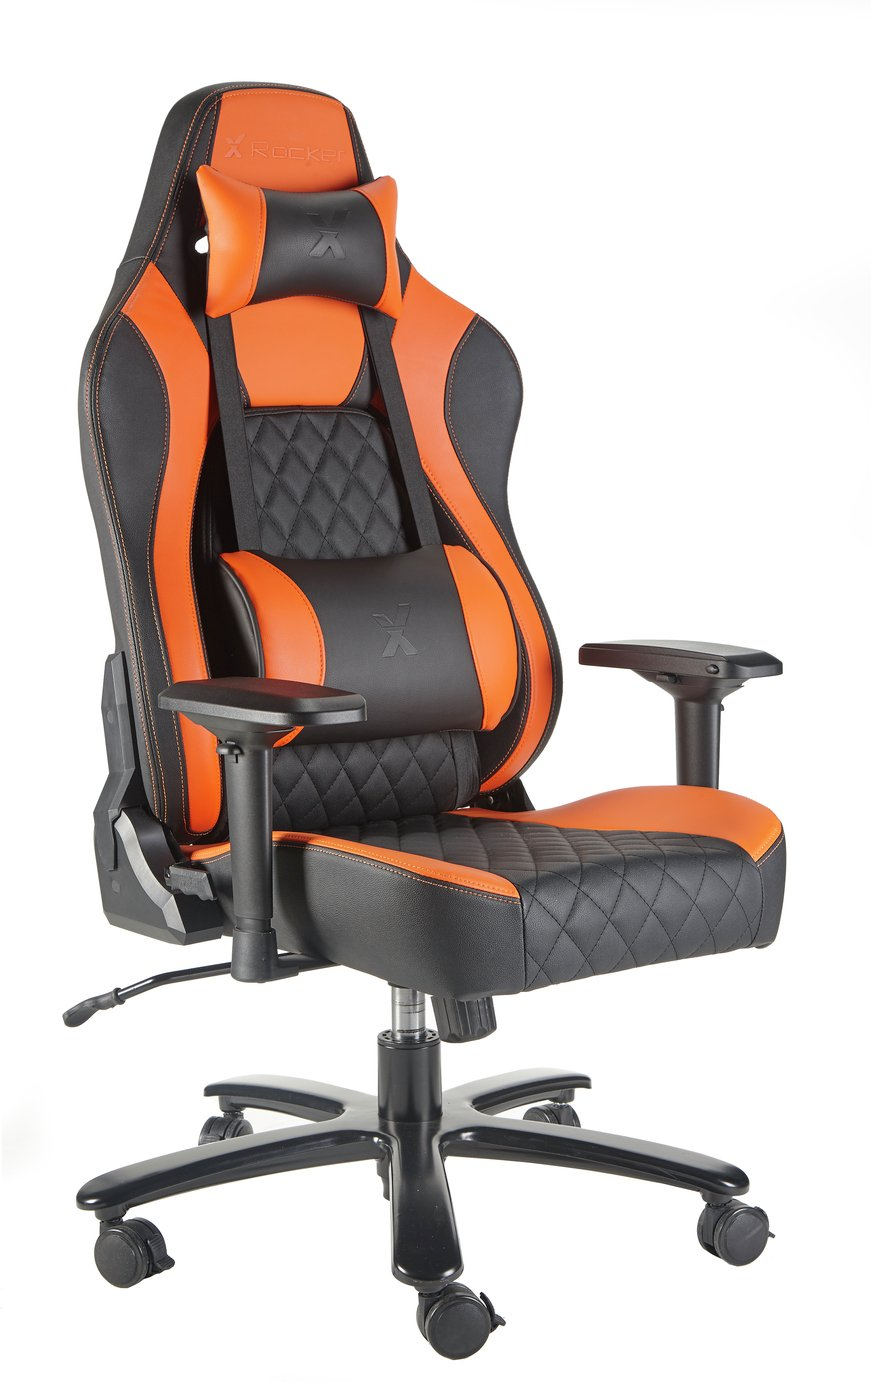 X Rocker Delta Pro Series IV Gaming Chair - Orange